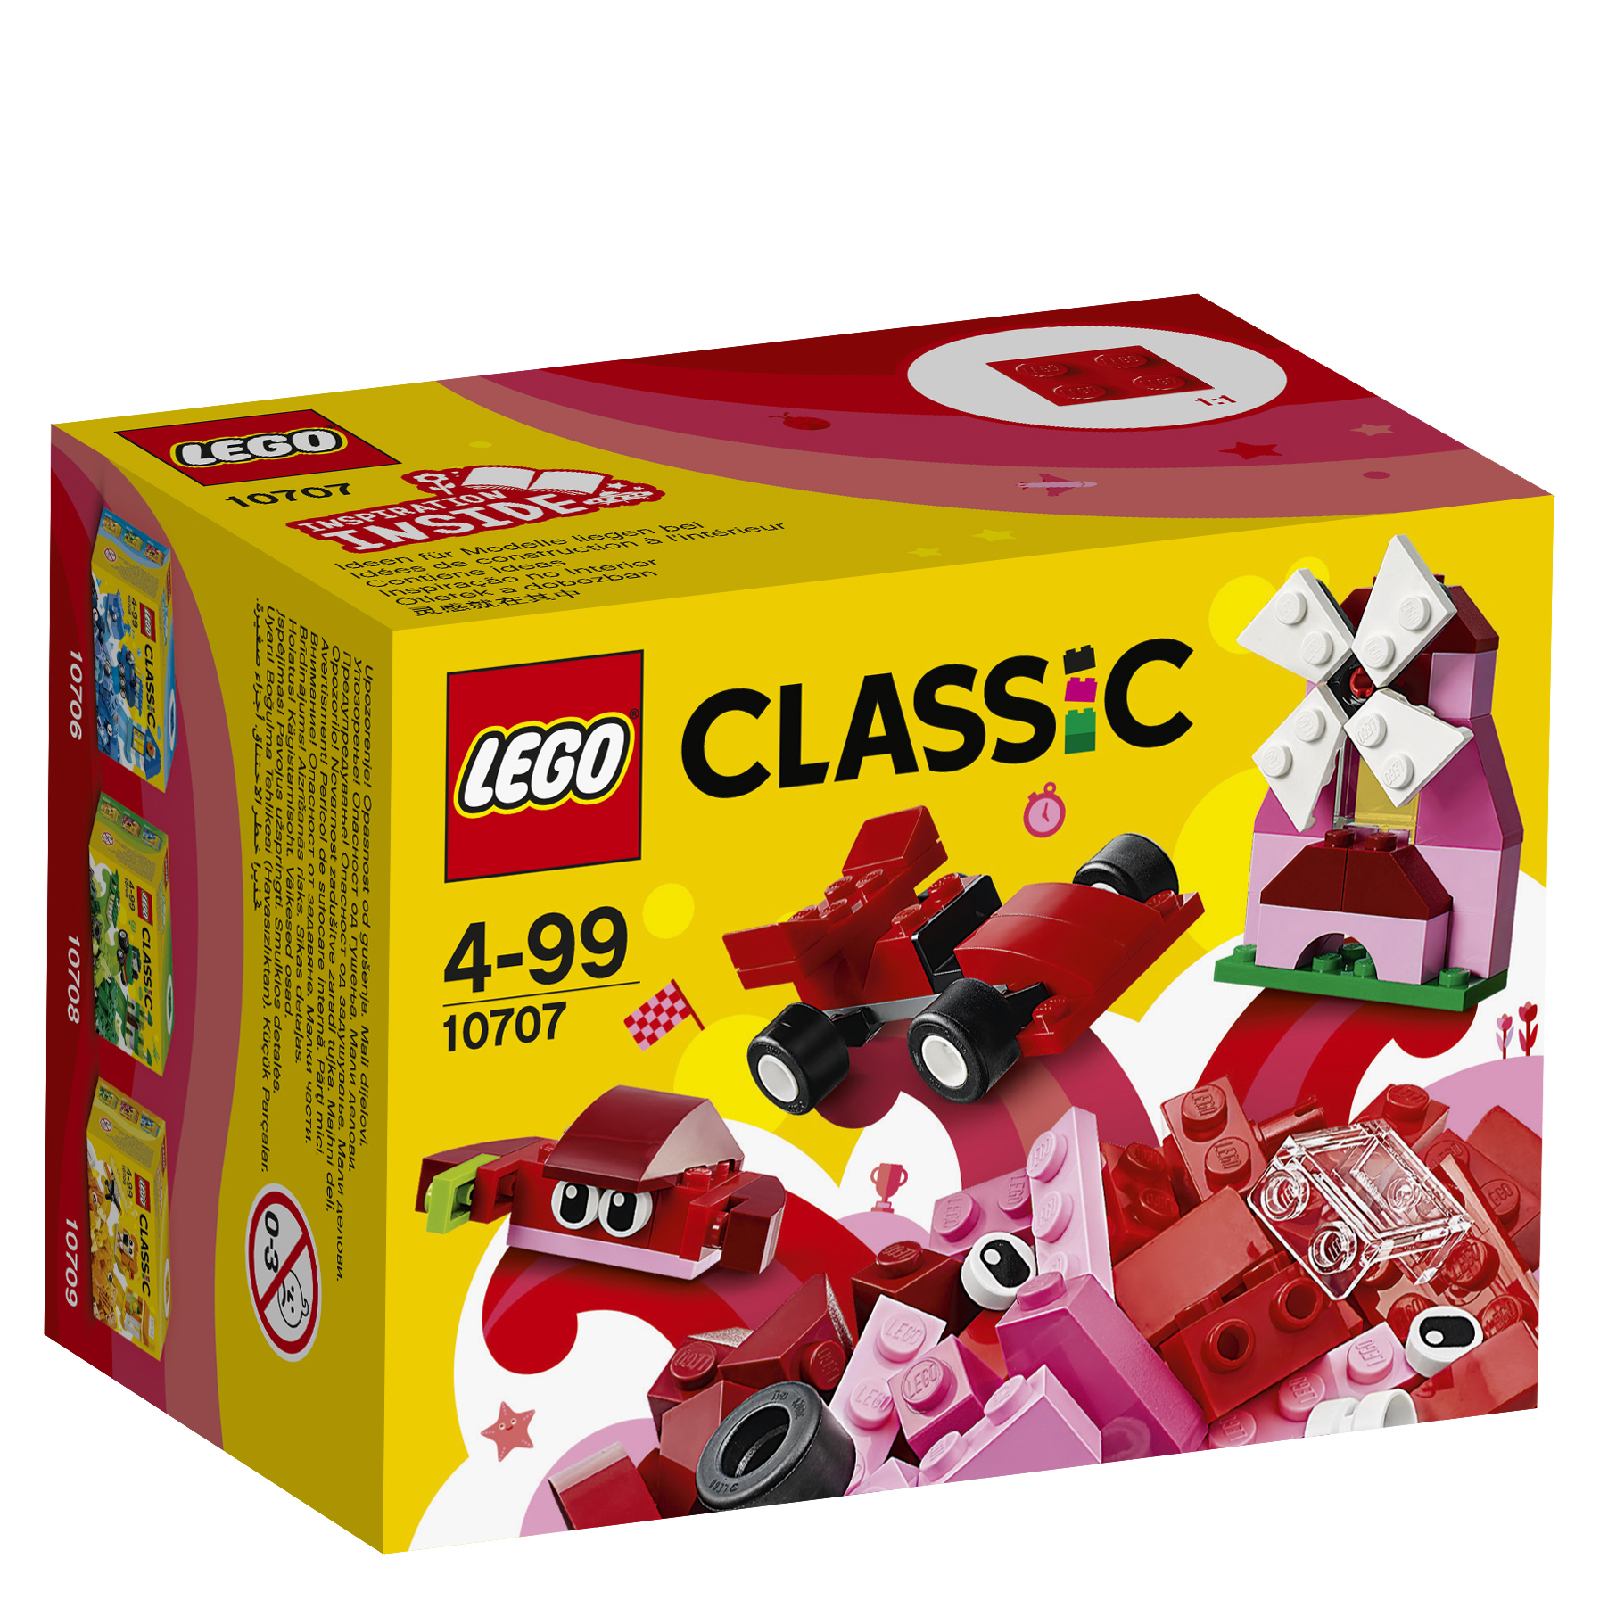 LEGO Classic: Red Creativity Box (10707)